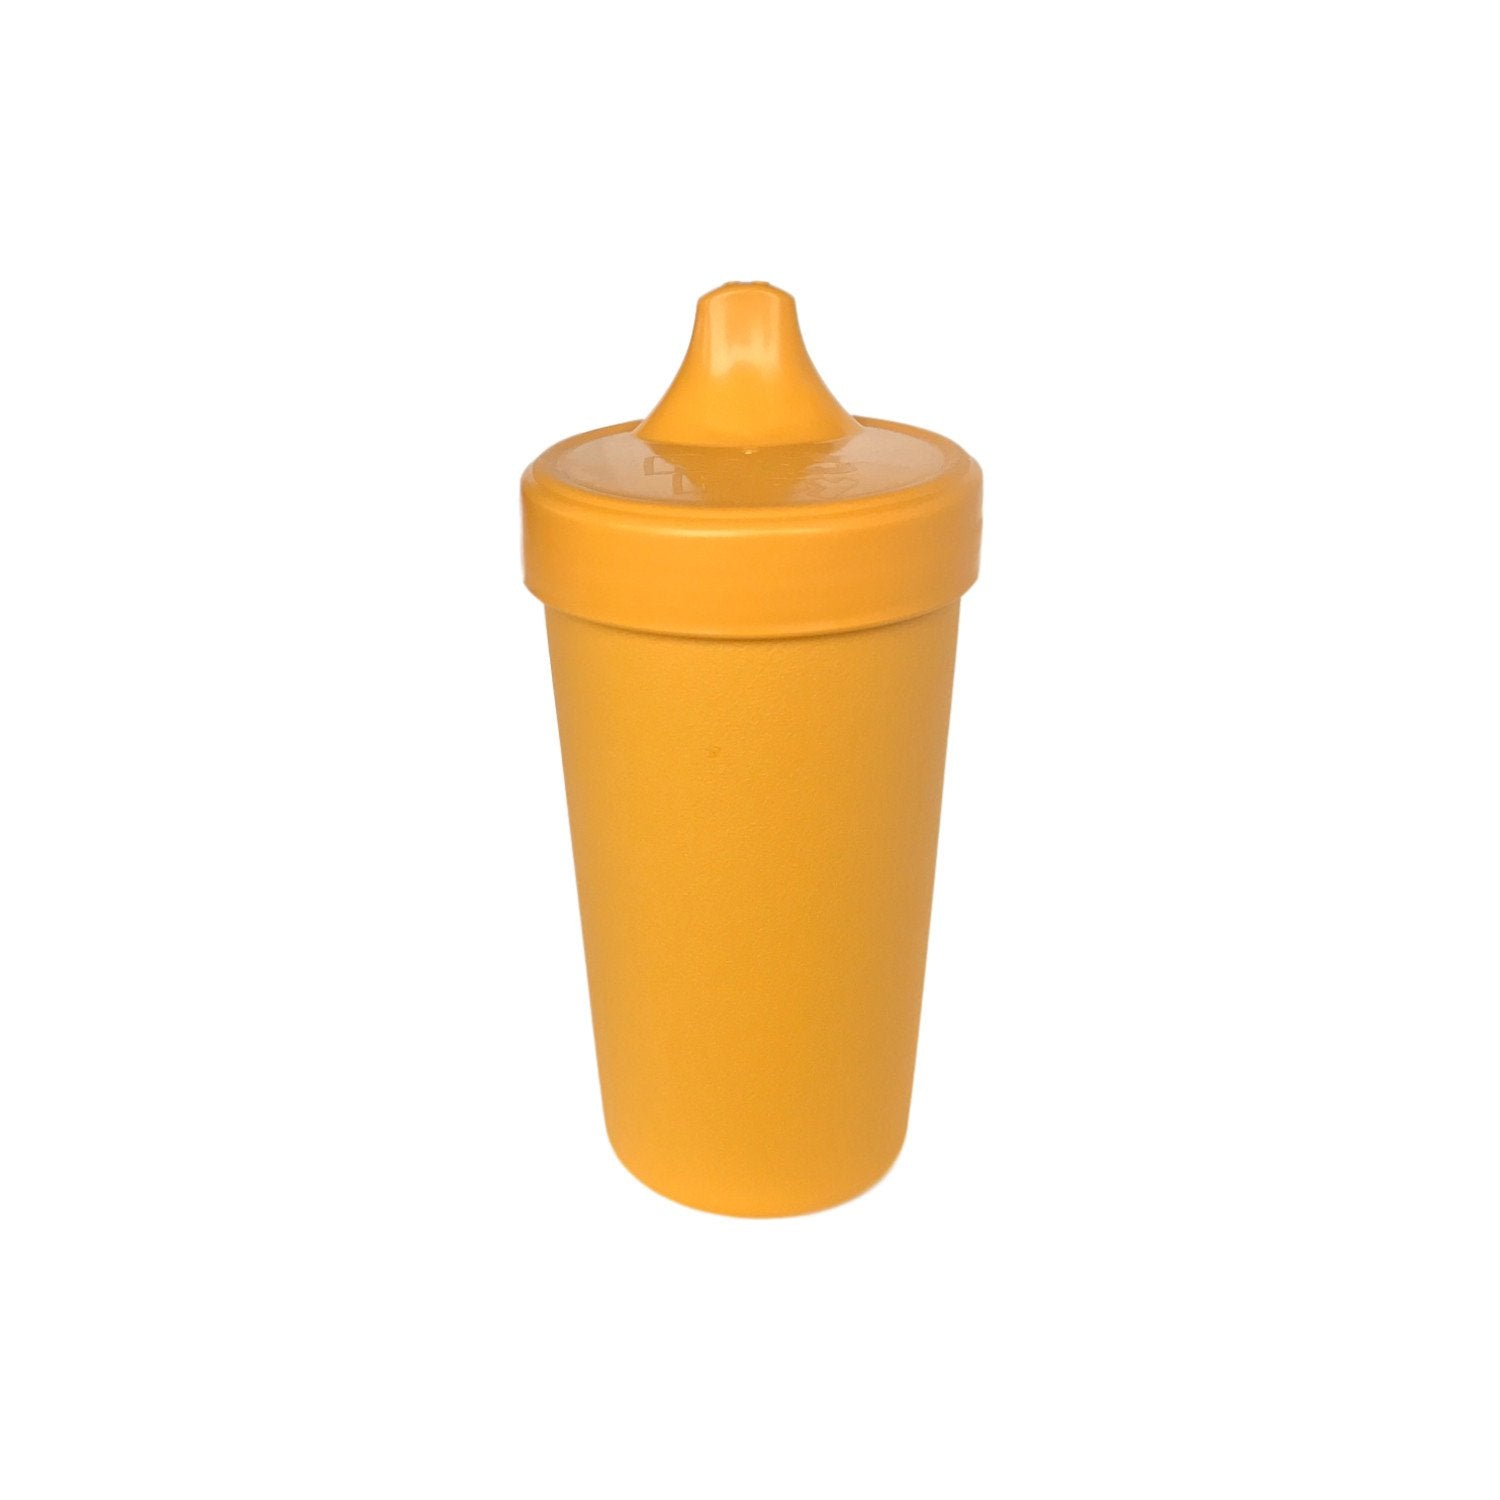 Replay Sippy Cup Replay Sippy Cups Sunny Yellow at Little Earth Nest Eco Shop